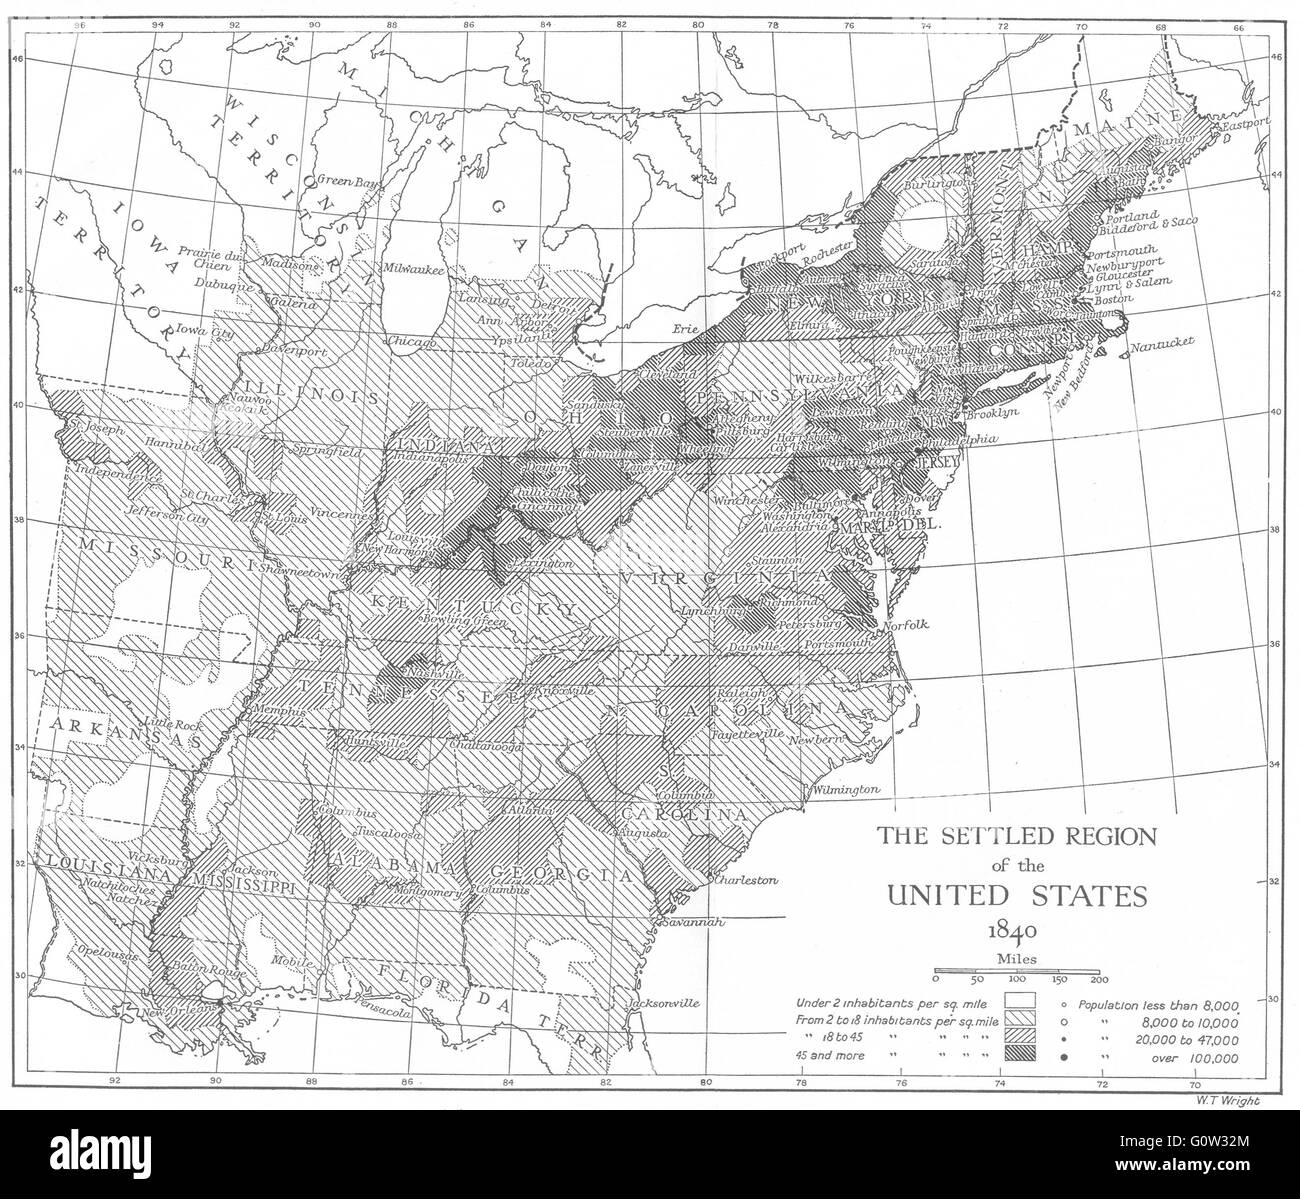 USA Northern States Settled Region Of US - Map of us in 1820